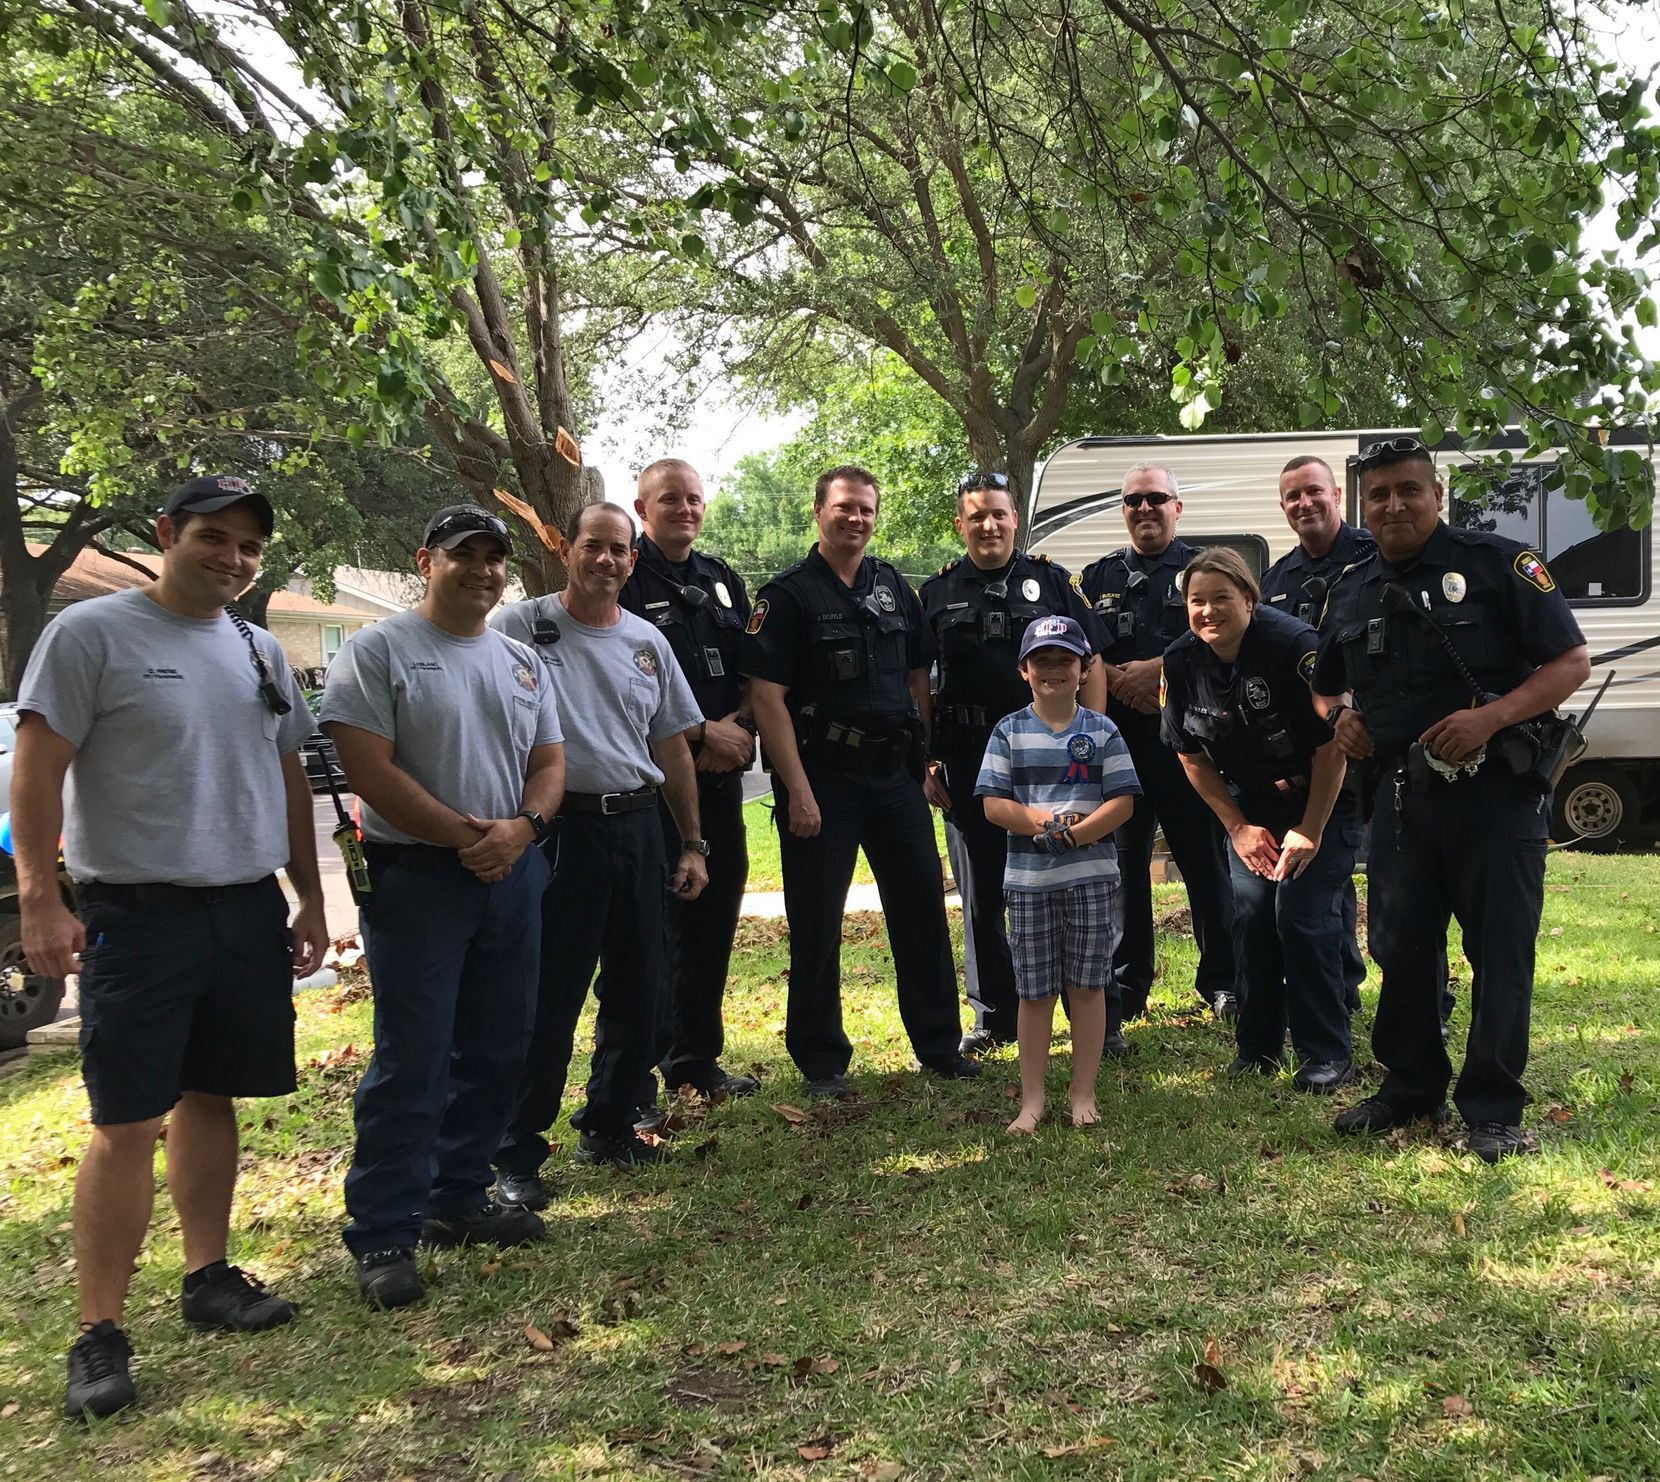 Graham is surrounded by Hurst police officers and firefighters who celebrated his birthday with him.